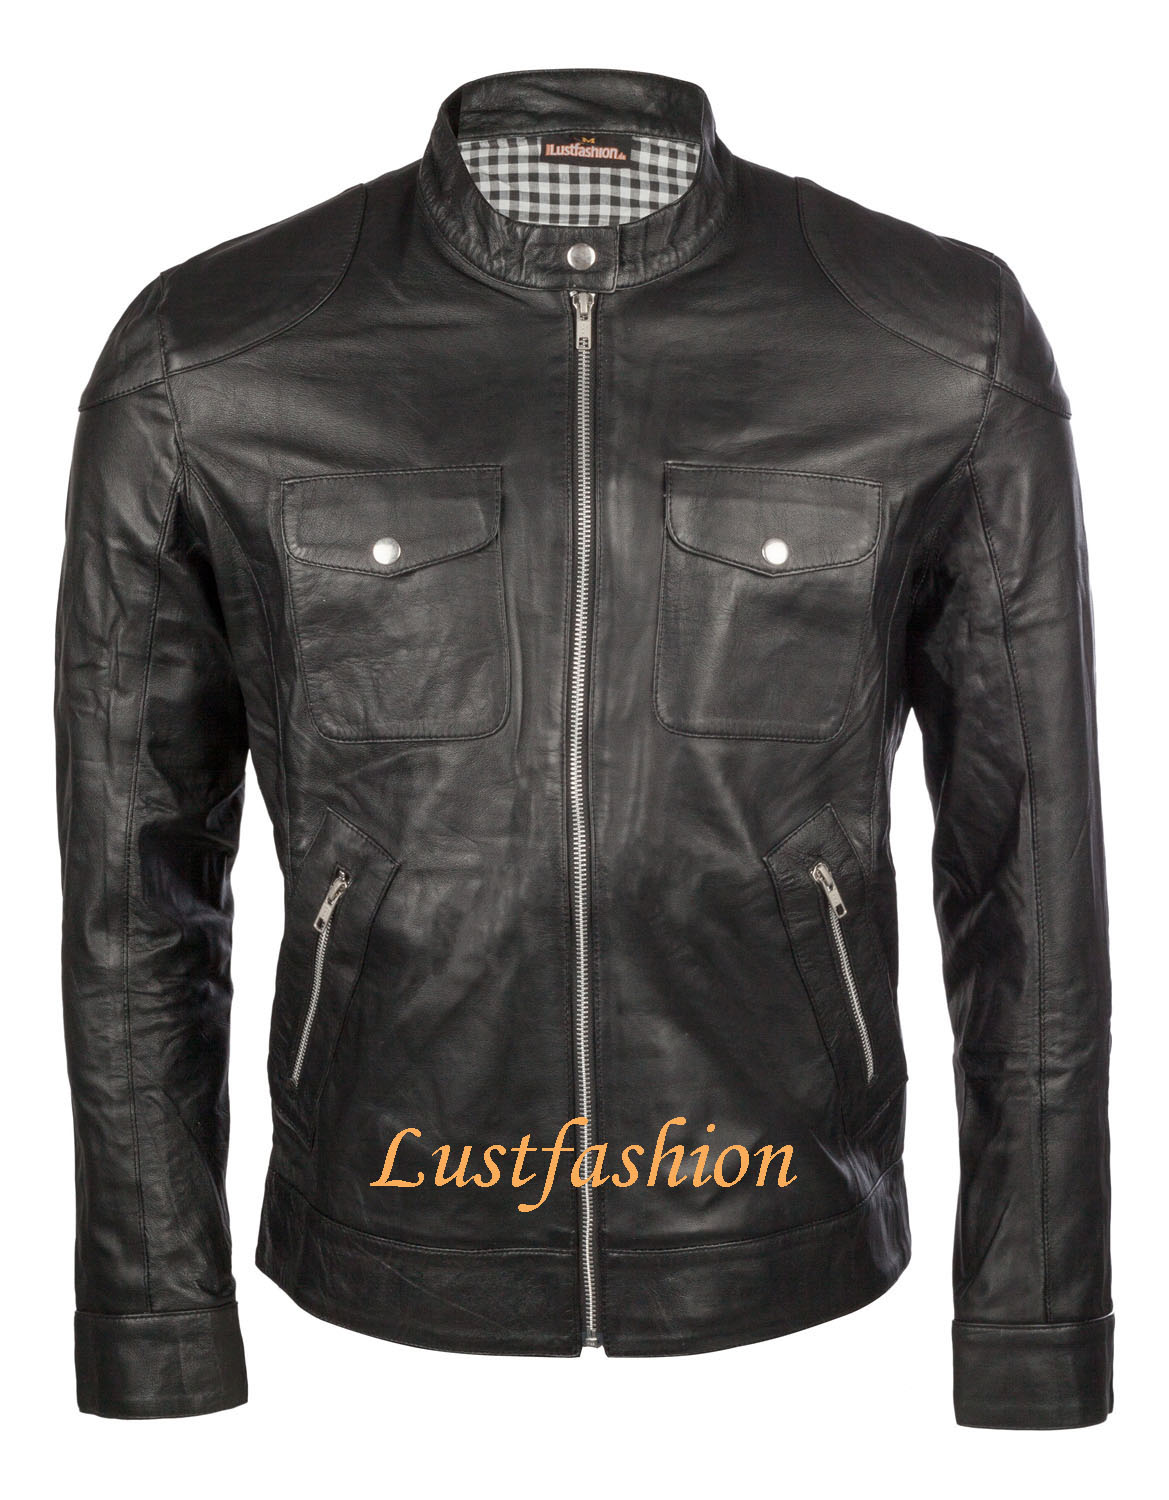 Lederjacke Färben Lustfashion Die Lust Am Leder Design Lederjacke In